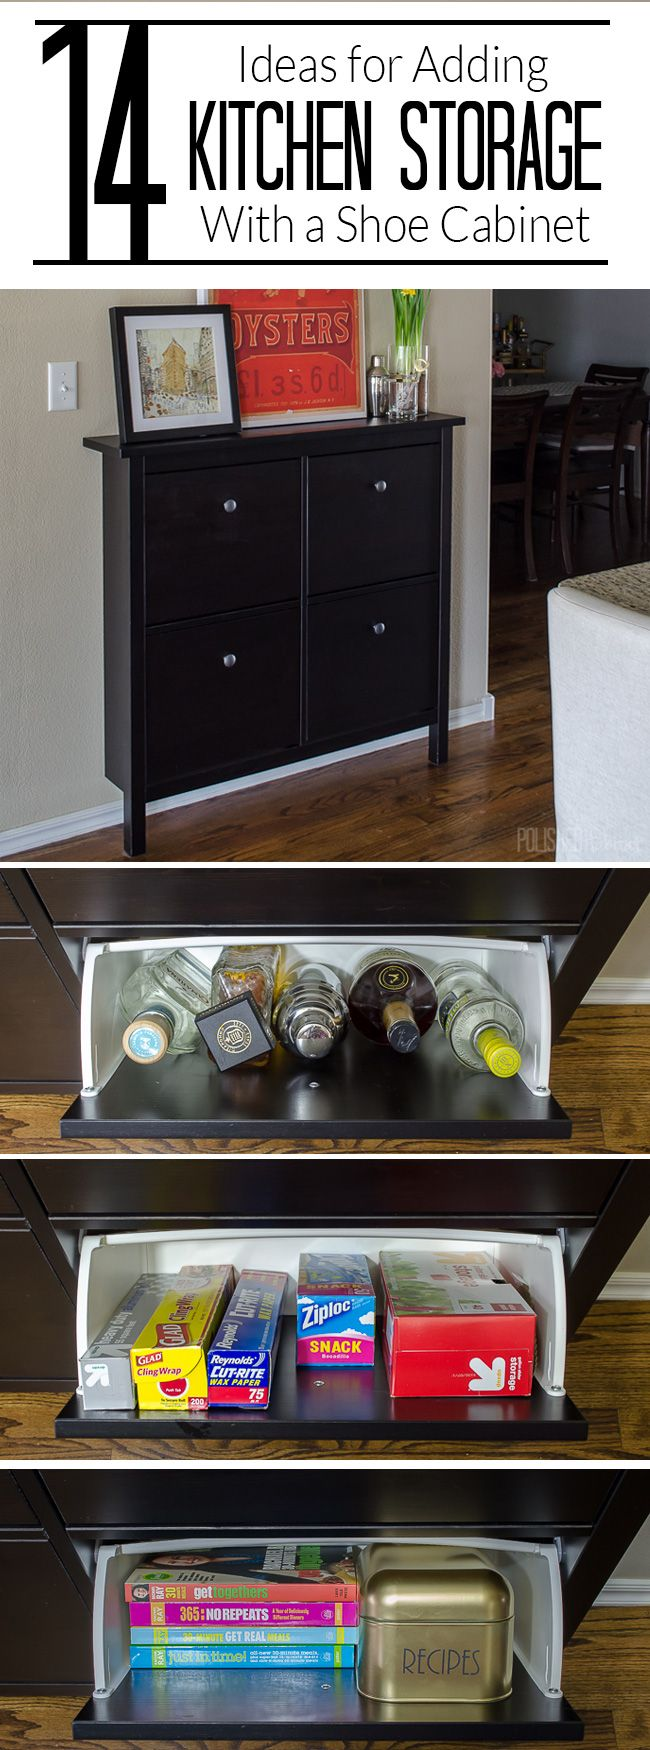 Add Kitchen Storage To A Small Space Using An Ikea Hemnes Shoe Cabinet Click For Photos Of  Different Ideas I Think Called Trones Shoe Cabinet Now